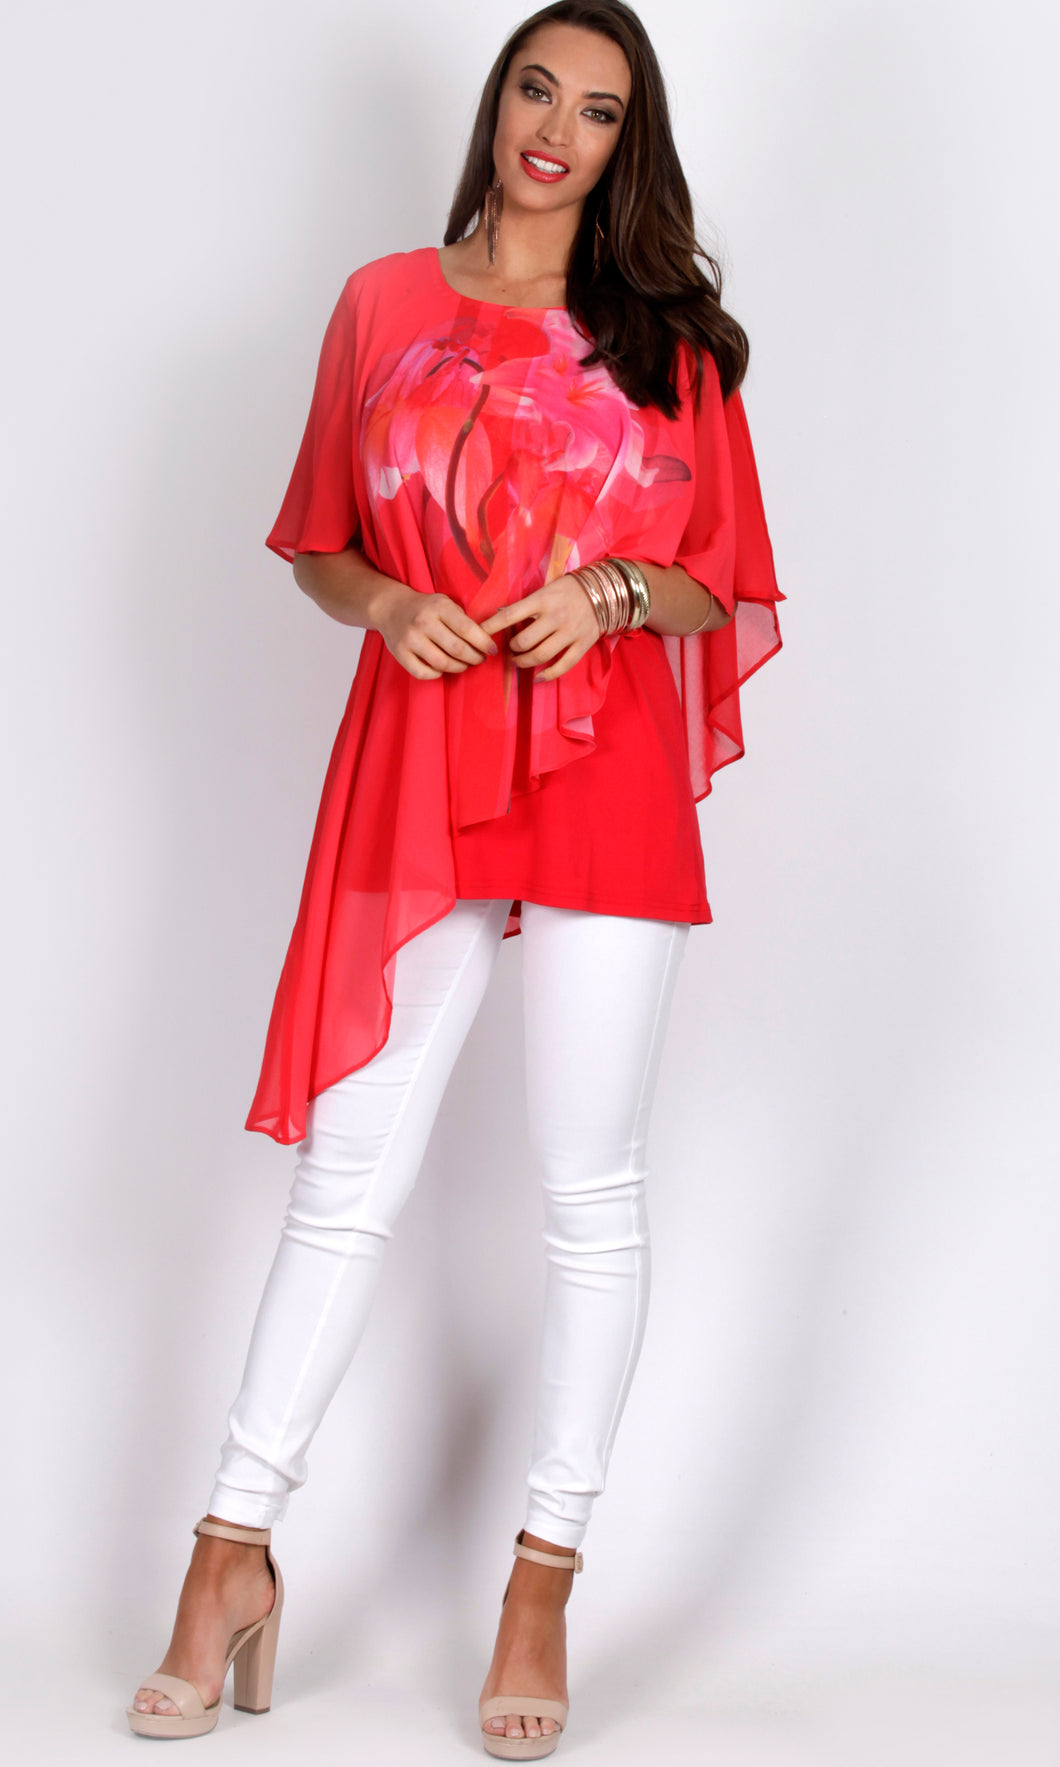 RV0392-1TB Red Floral Printed Chiffon Overlay Top (Pack)